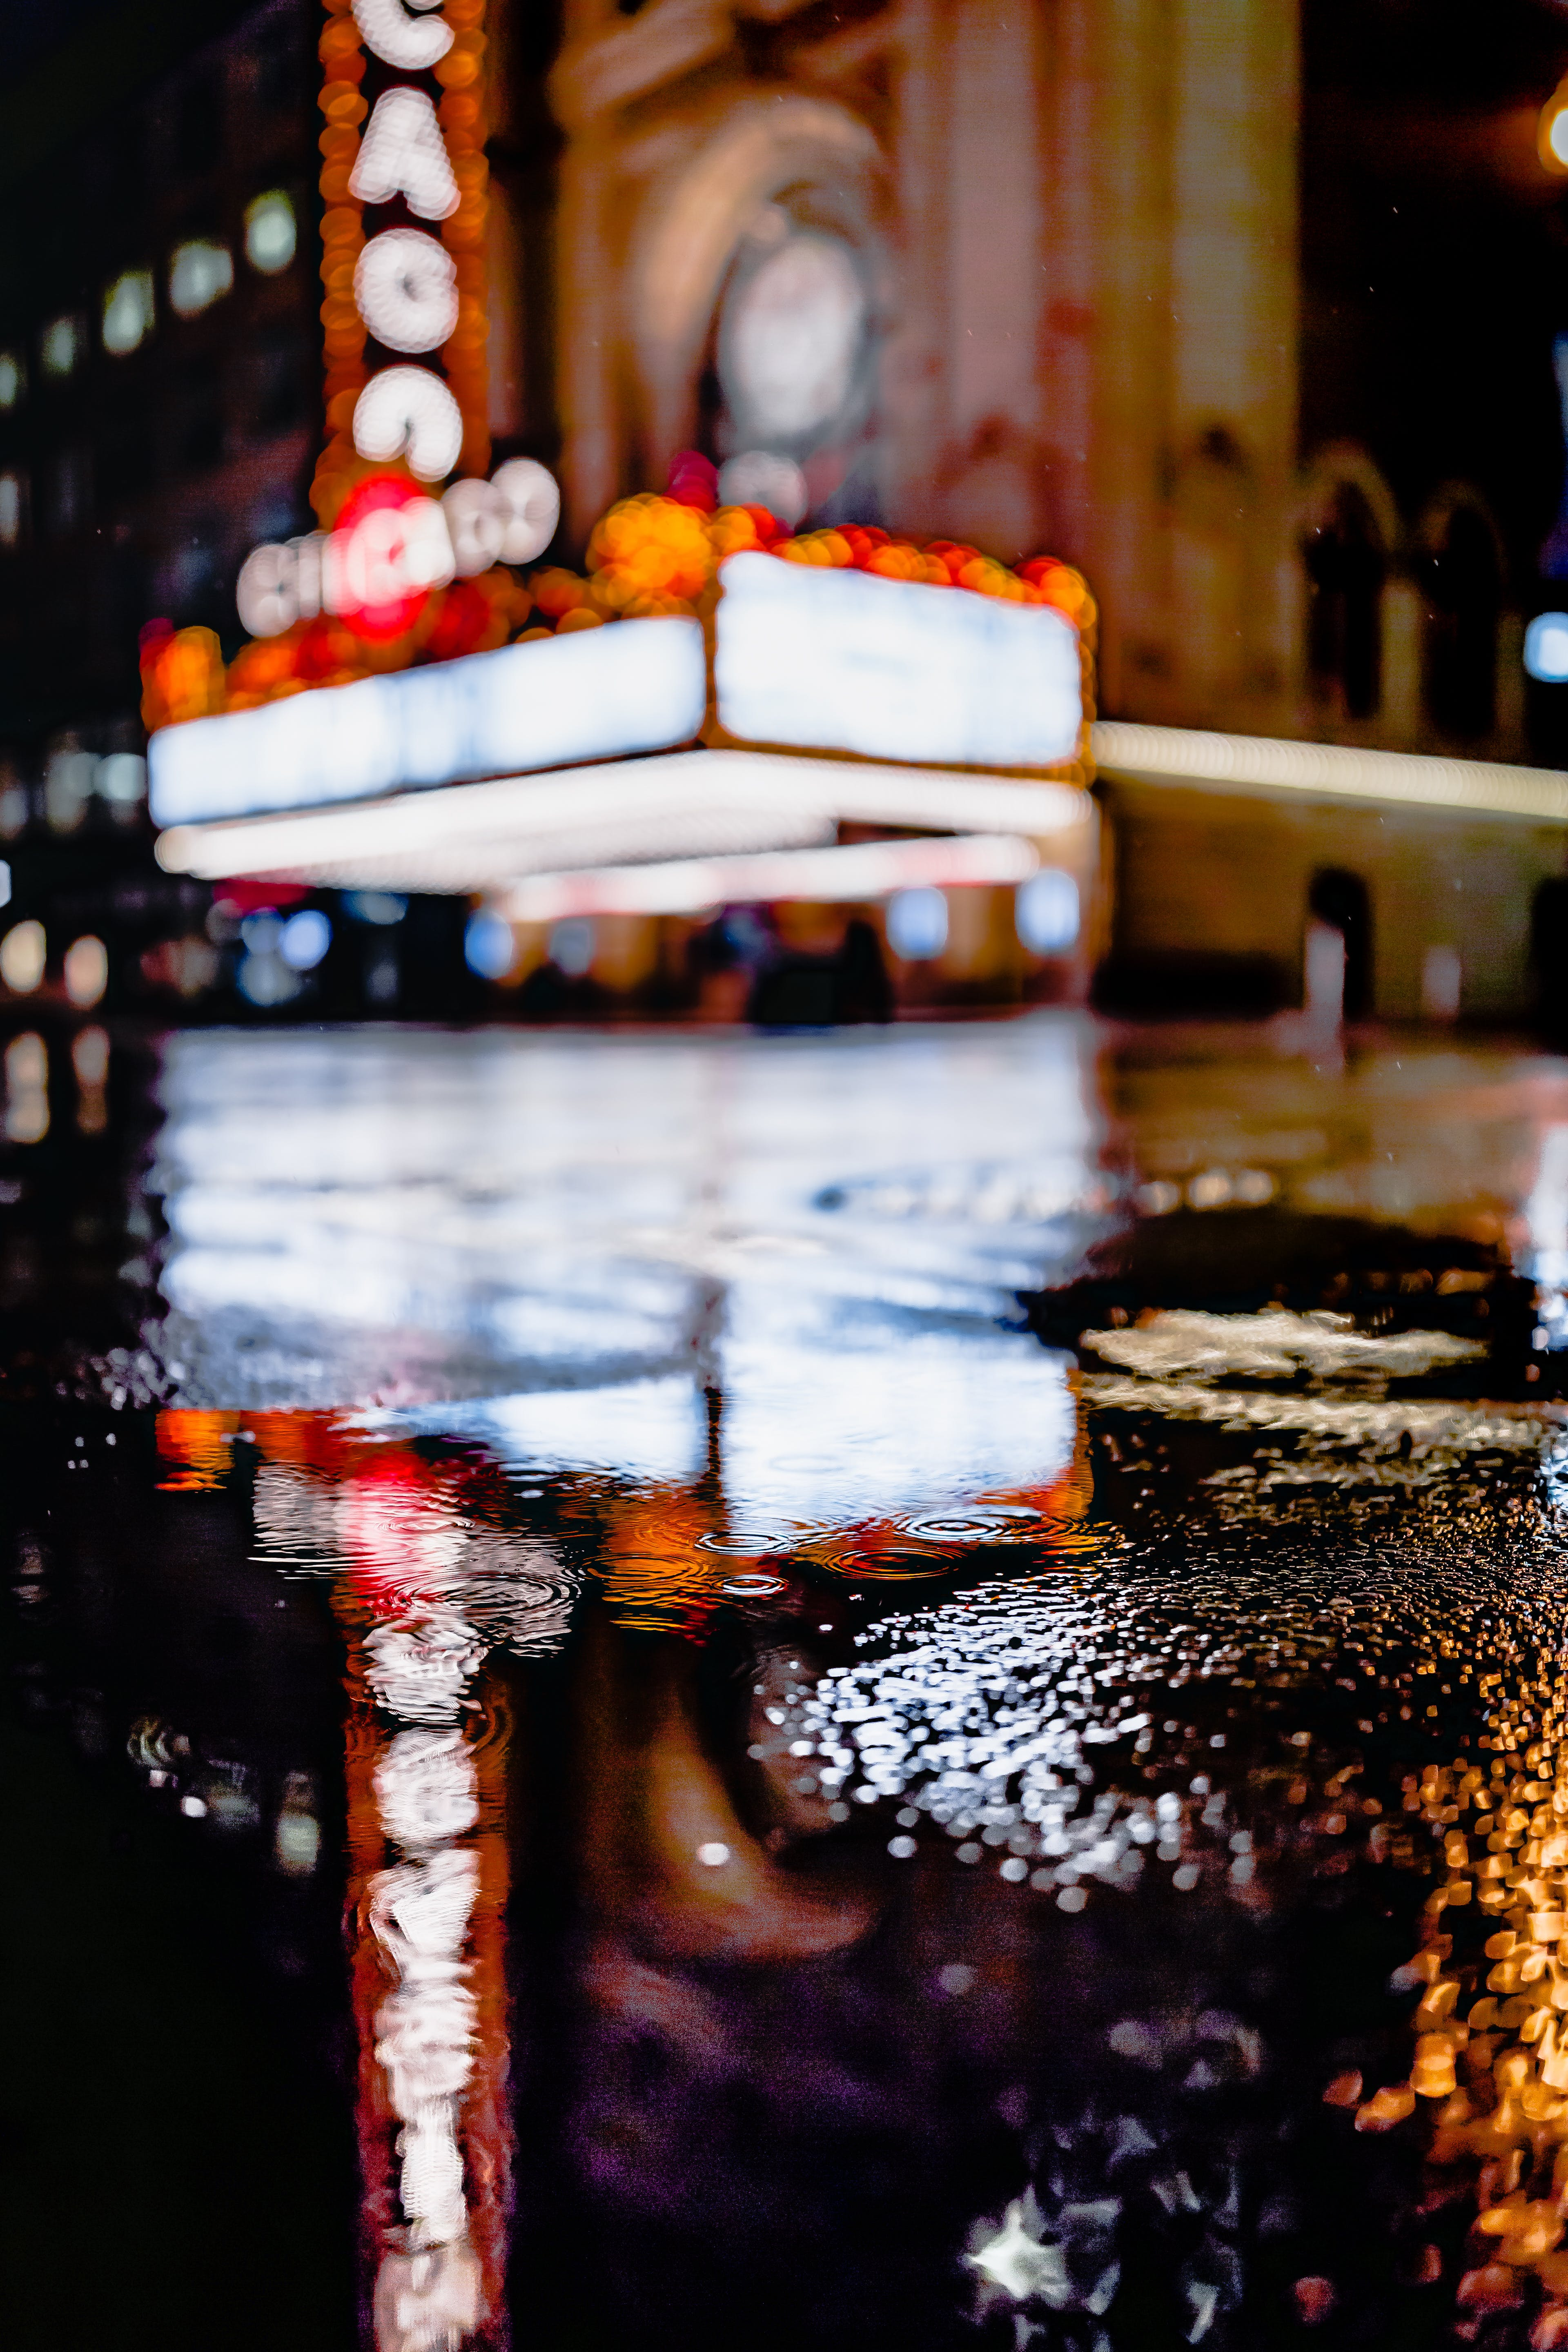 Selective Focus Photography of Puddle on Roadway